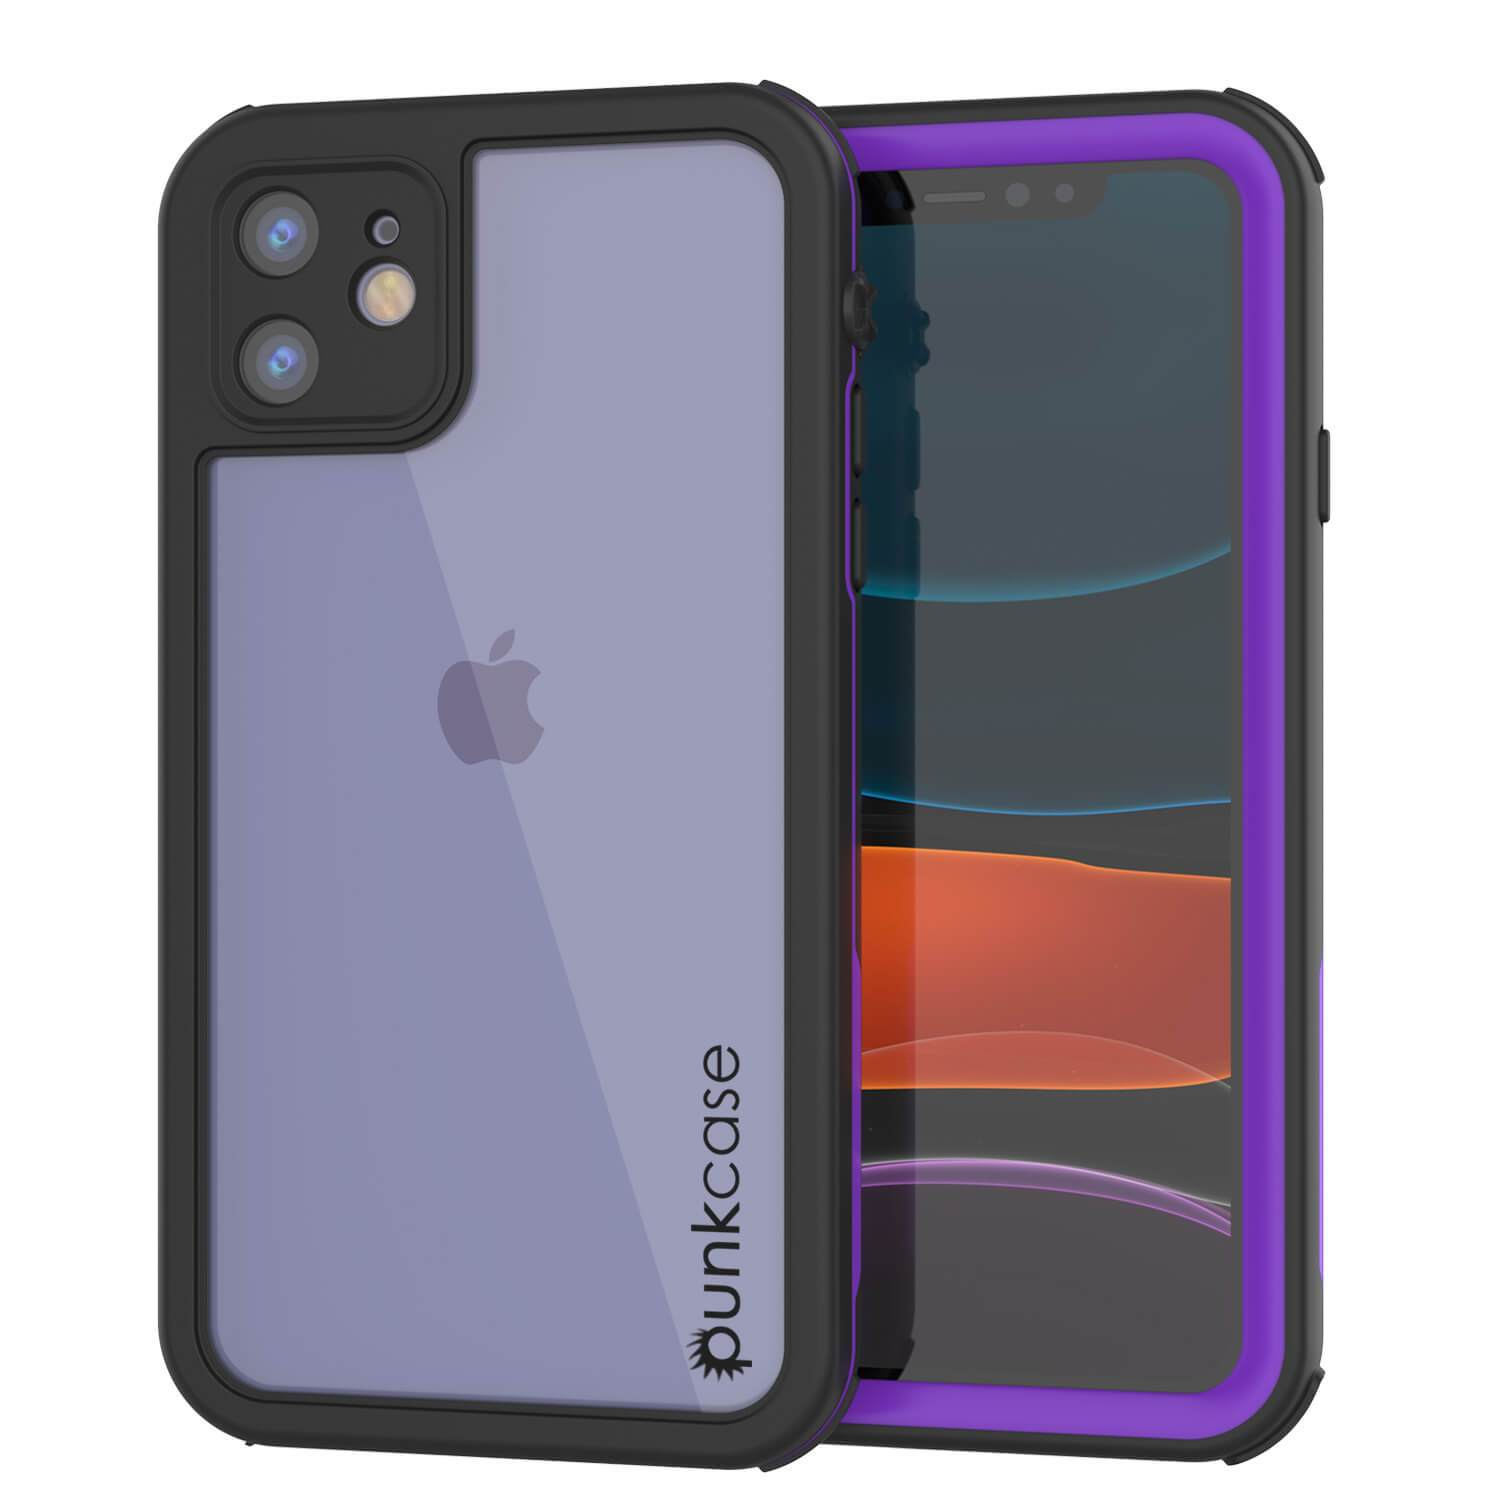 iPhone 8+ Plus Waterproof IP68 Case, Punkcase [Purple] [Rapture Series]  W/Built in Screen Protector